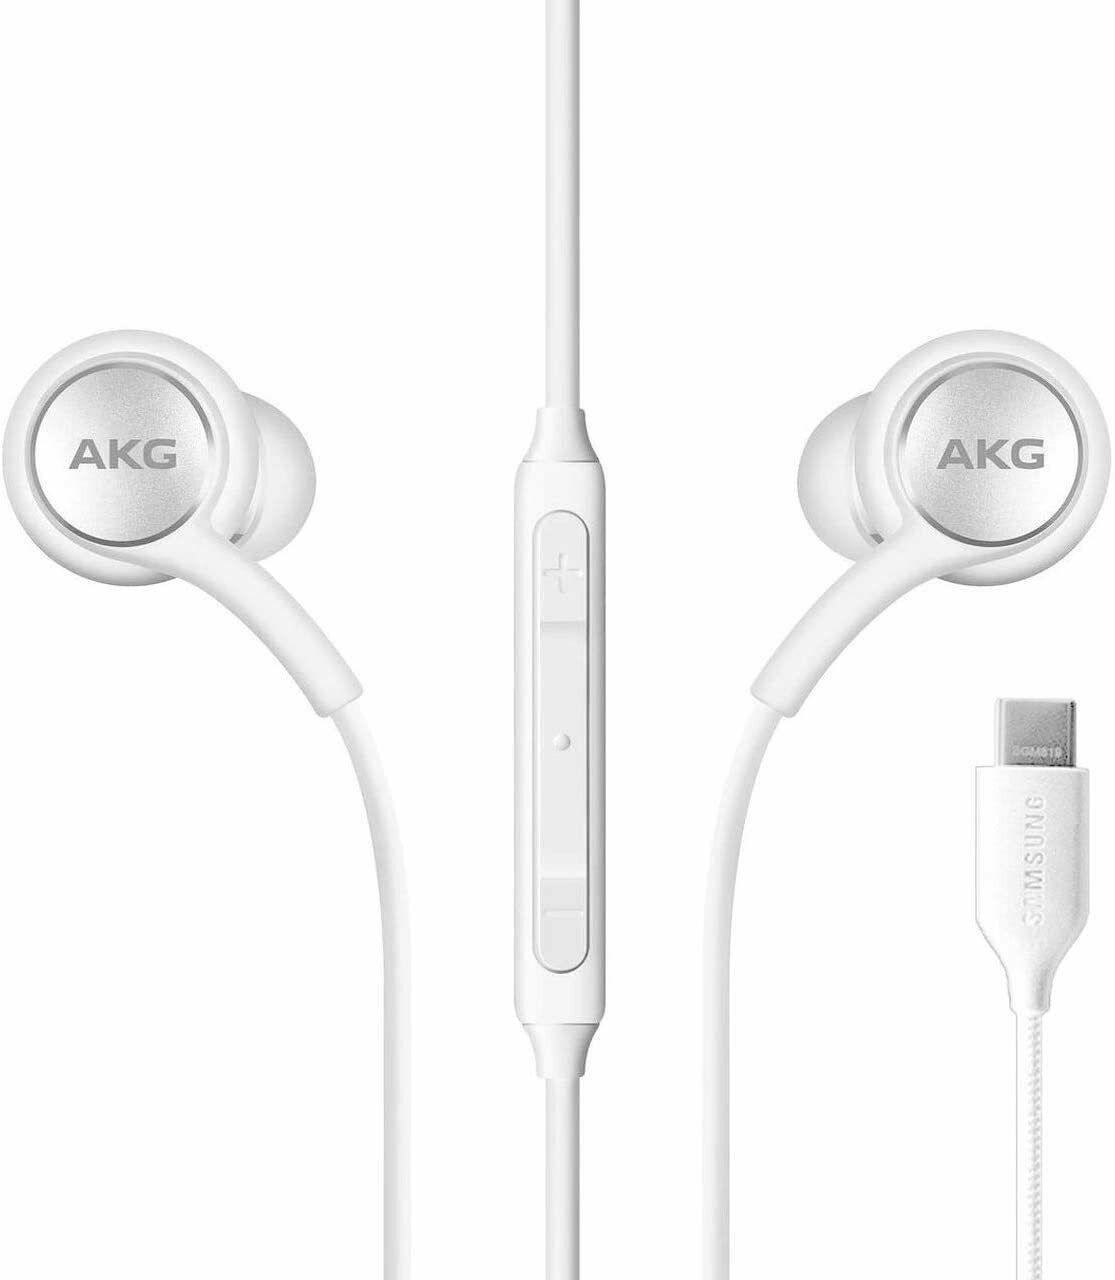 Official Samsung Galaxy Note 20 Ultra AKG Type-C Headset Earphone Headphones White